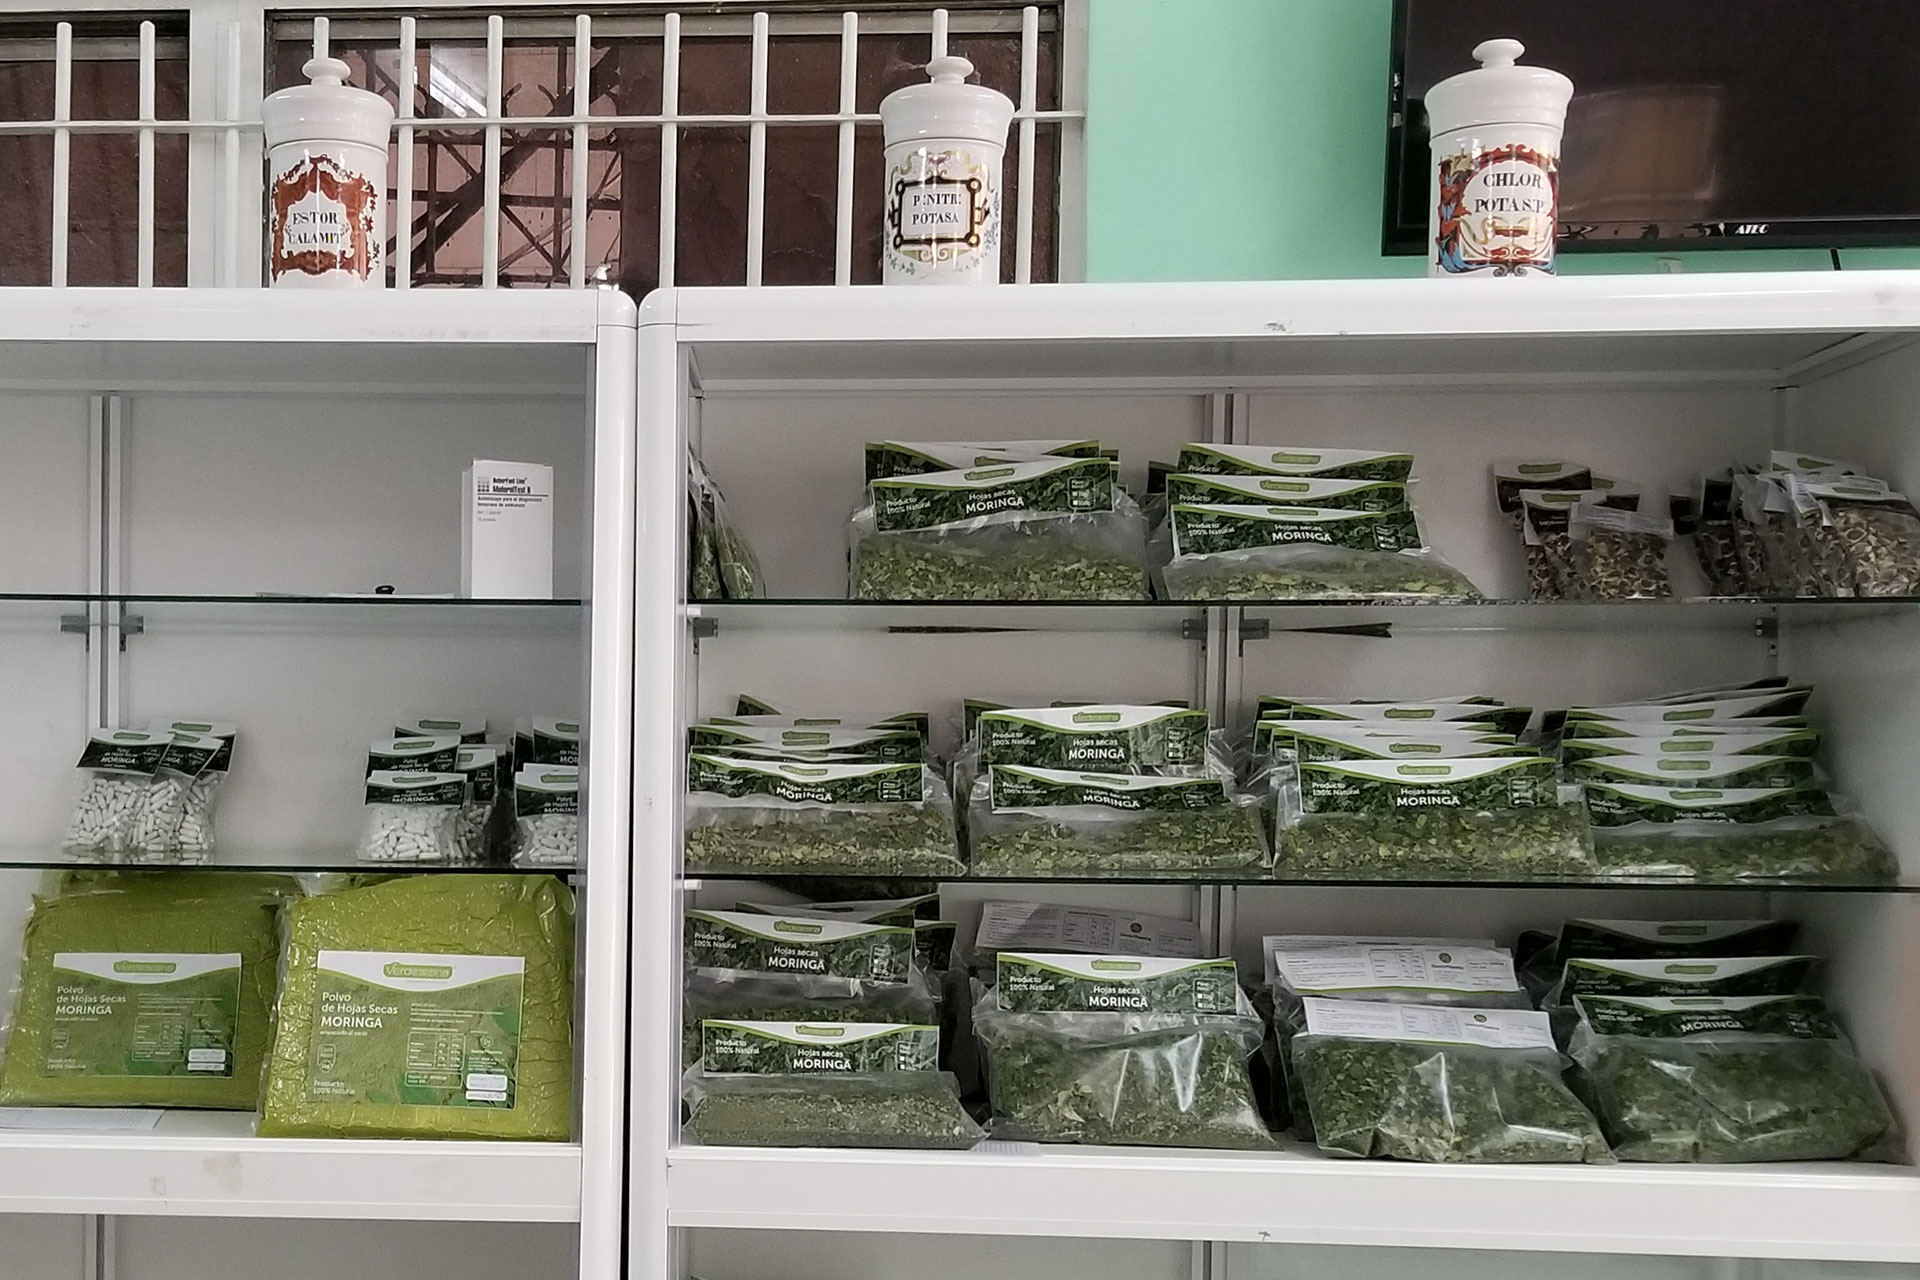 The shelves of this pharmacy are stocked with various forms of moringa, including dried leaves and leaf powder, on March 9, 2019. Moringa is one of the most common and versatile plants within the practice of traditional medicine.(Photo by Seamus McAvoy/GroundTruth)